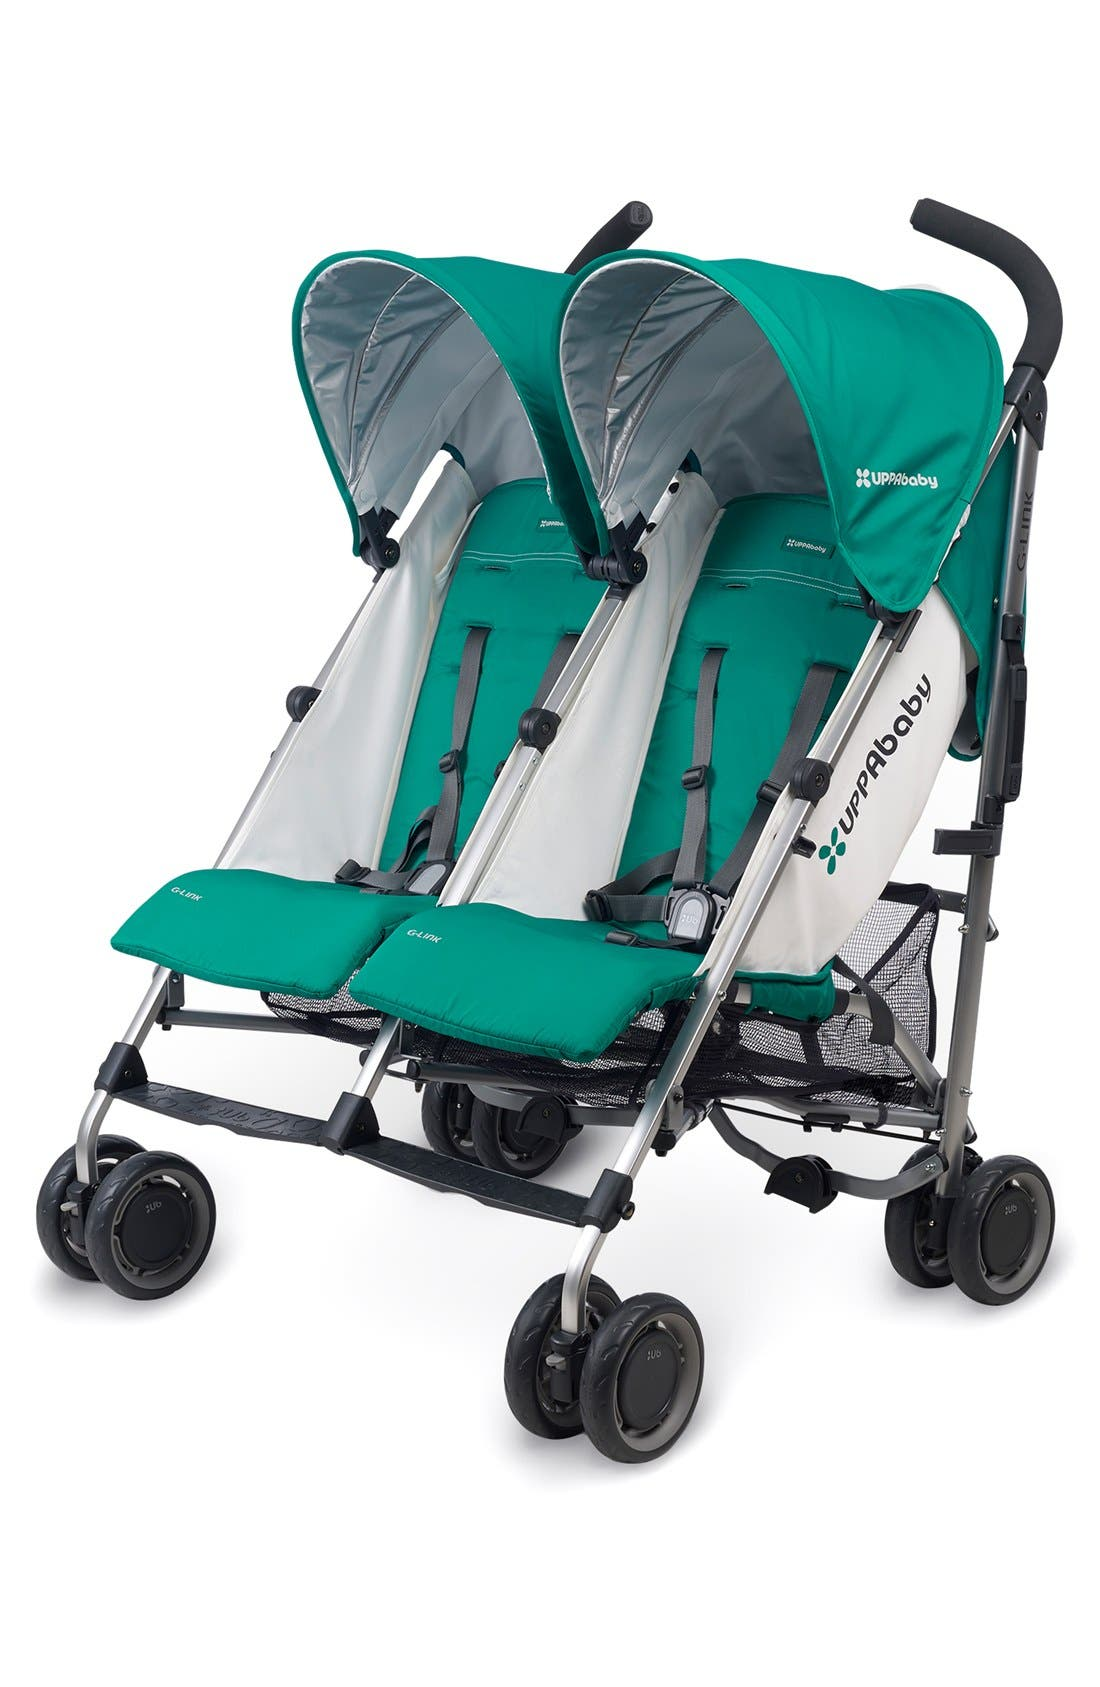 G-LINK Ella Aluminum Frame Reclining Side by Side Umbrella Stroller,                         Main,                         color, 300